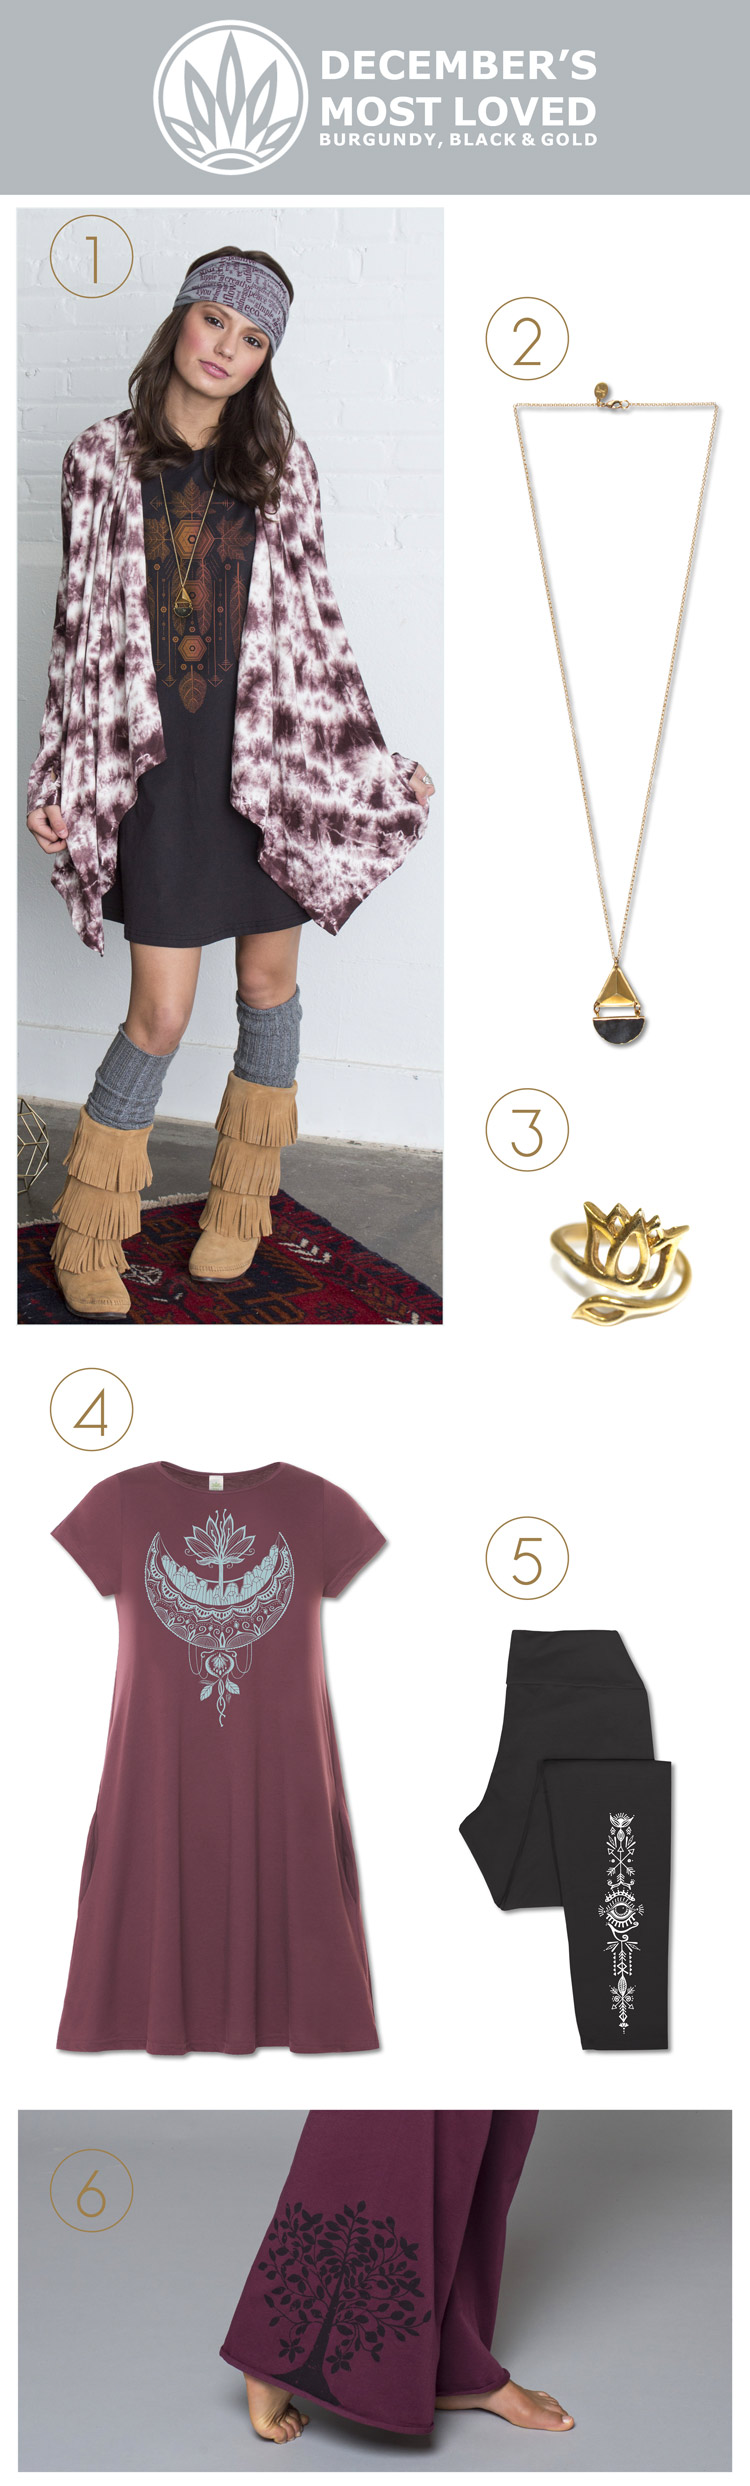 December's Most Loved | Soul Flower Clothing | Soulflower | Organic Clothes | Eco-Friendly | Boho Jewelry